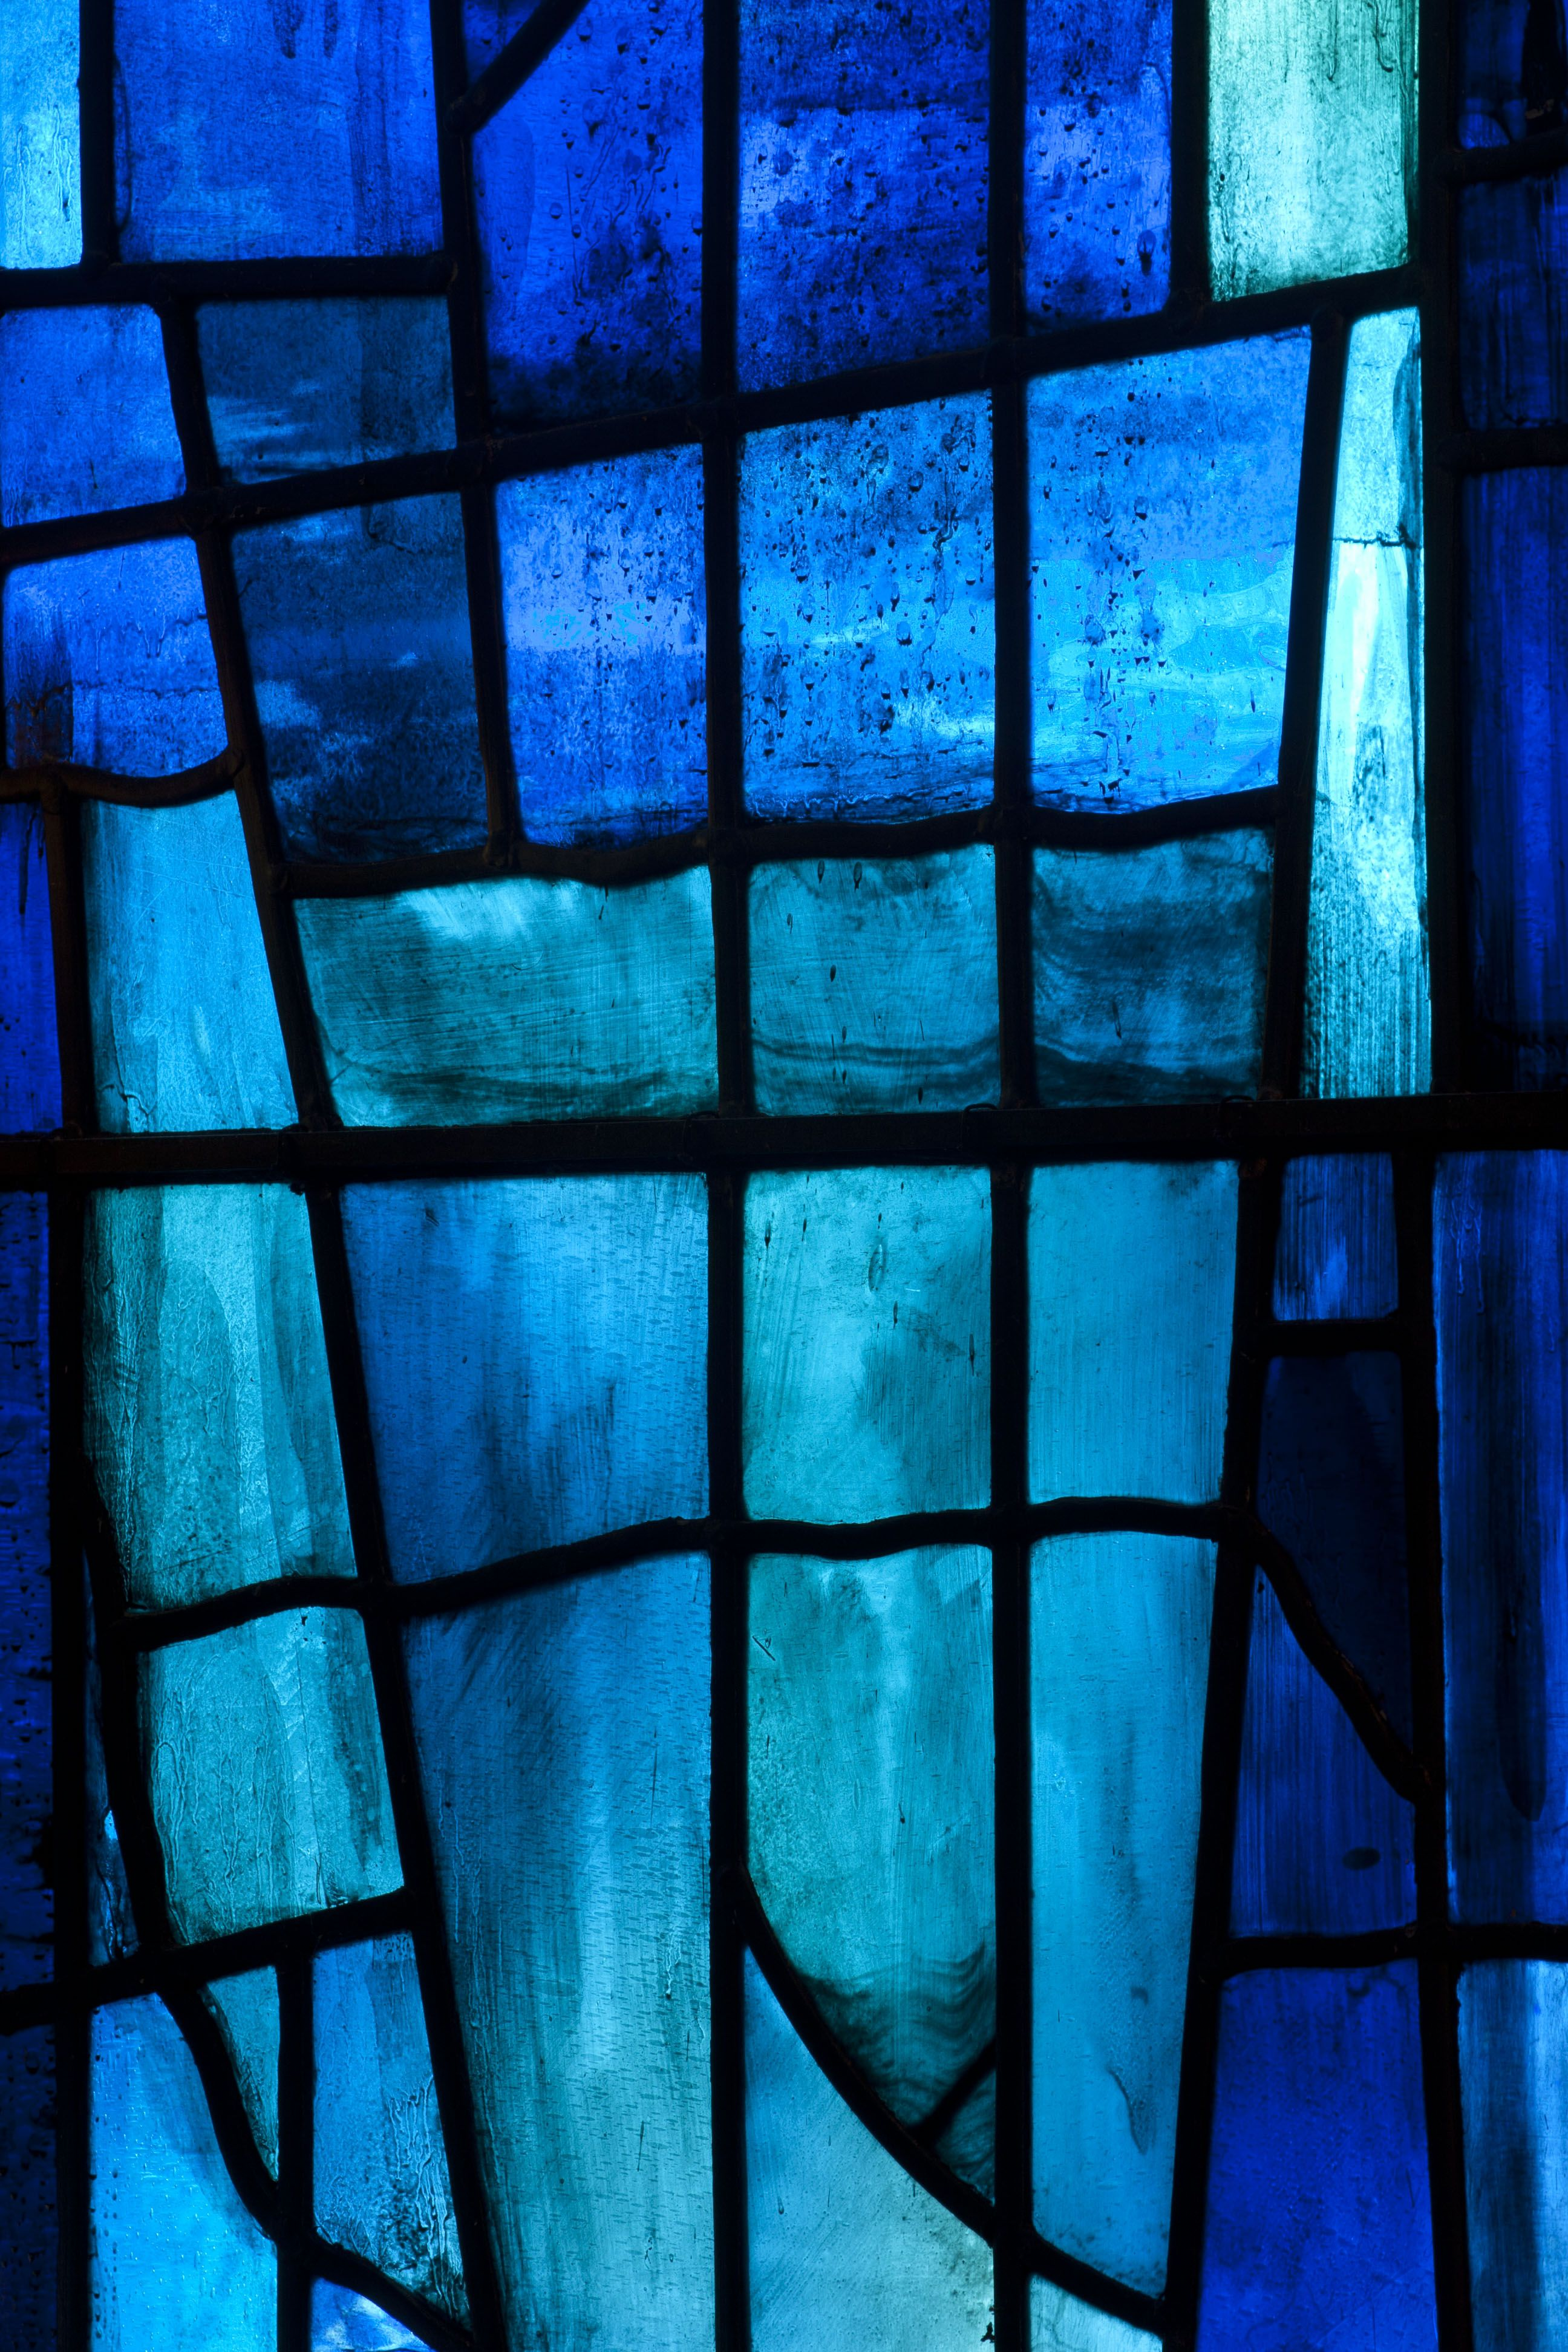 John Piper Stained Glass Window In The Chapel At Churchill College Exhibition From June 14th 18th Prints For Sale ステンドグラス 背景 写真 テクスチャペイント